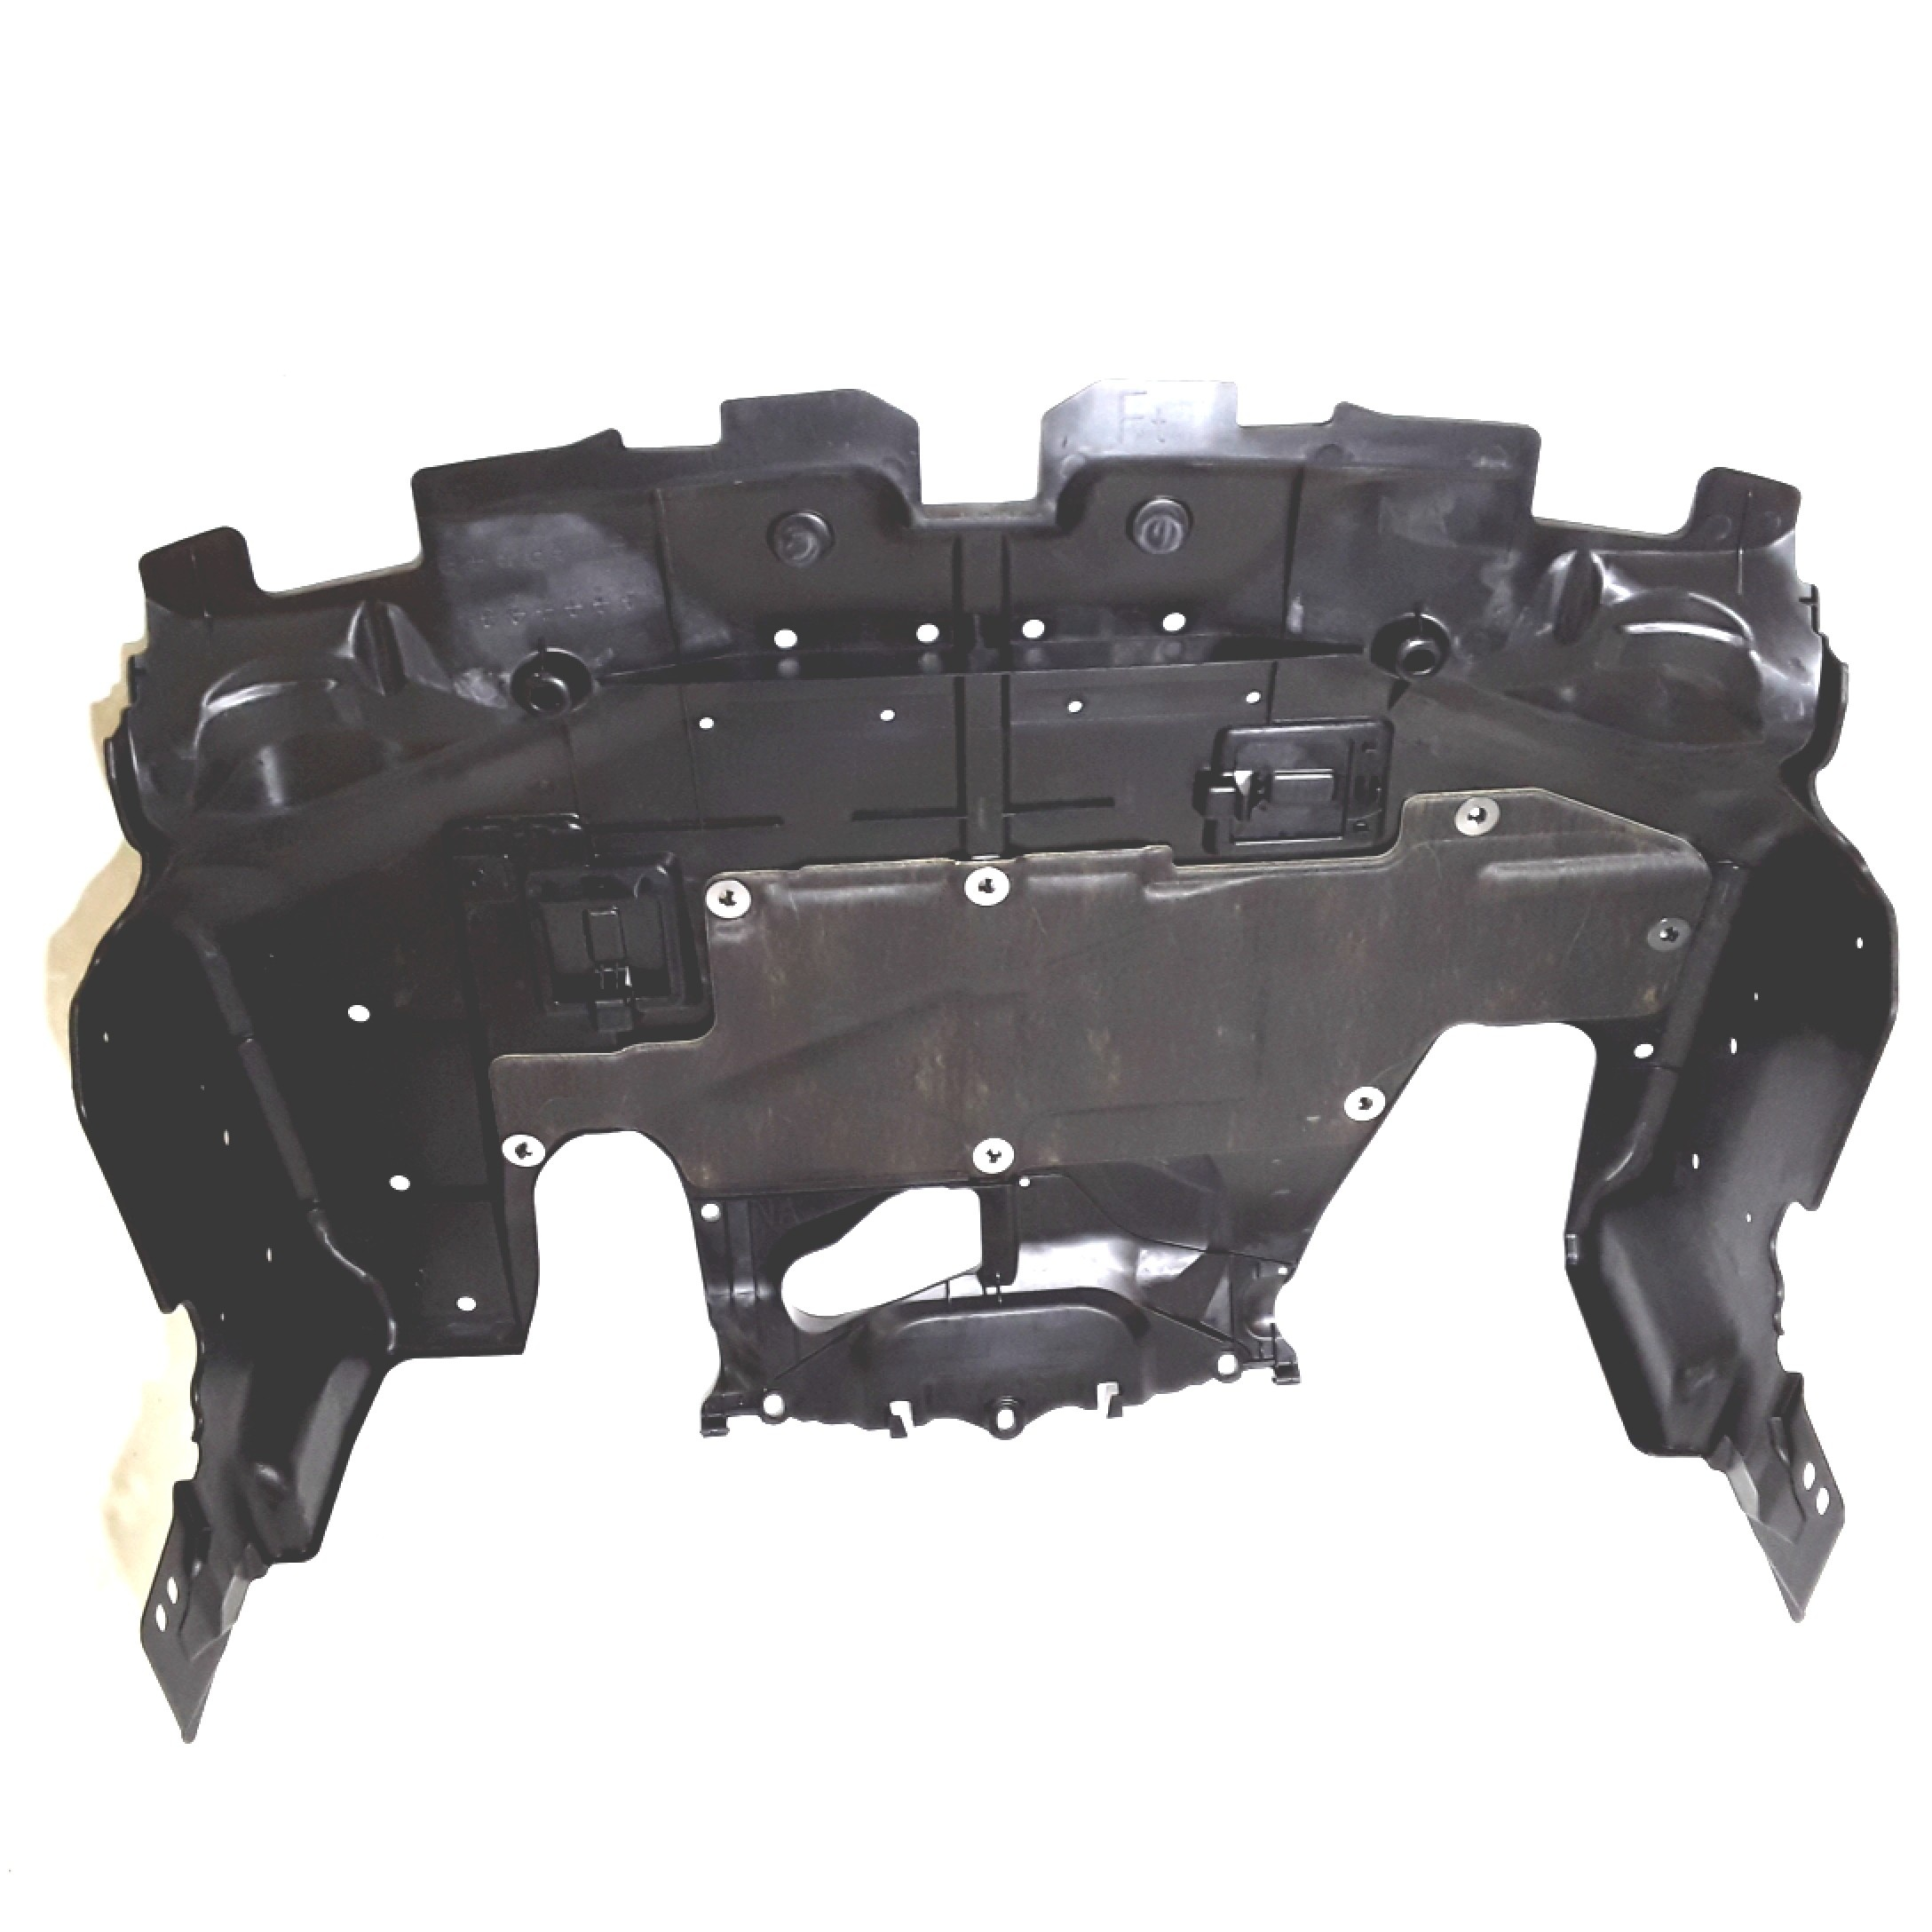 56410ag144 - Under Cover-front  Exhaust  Body